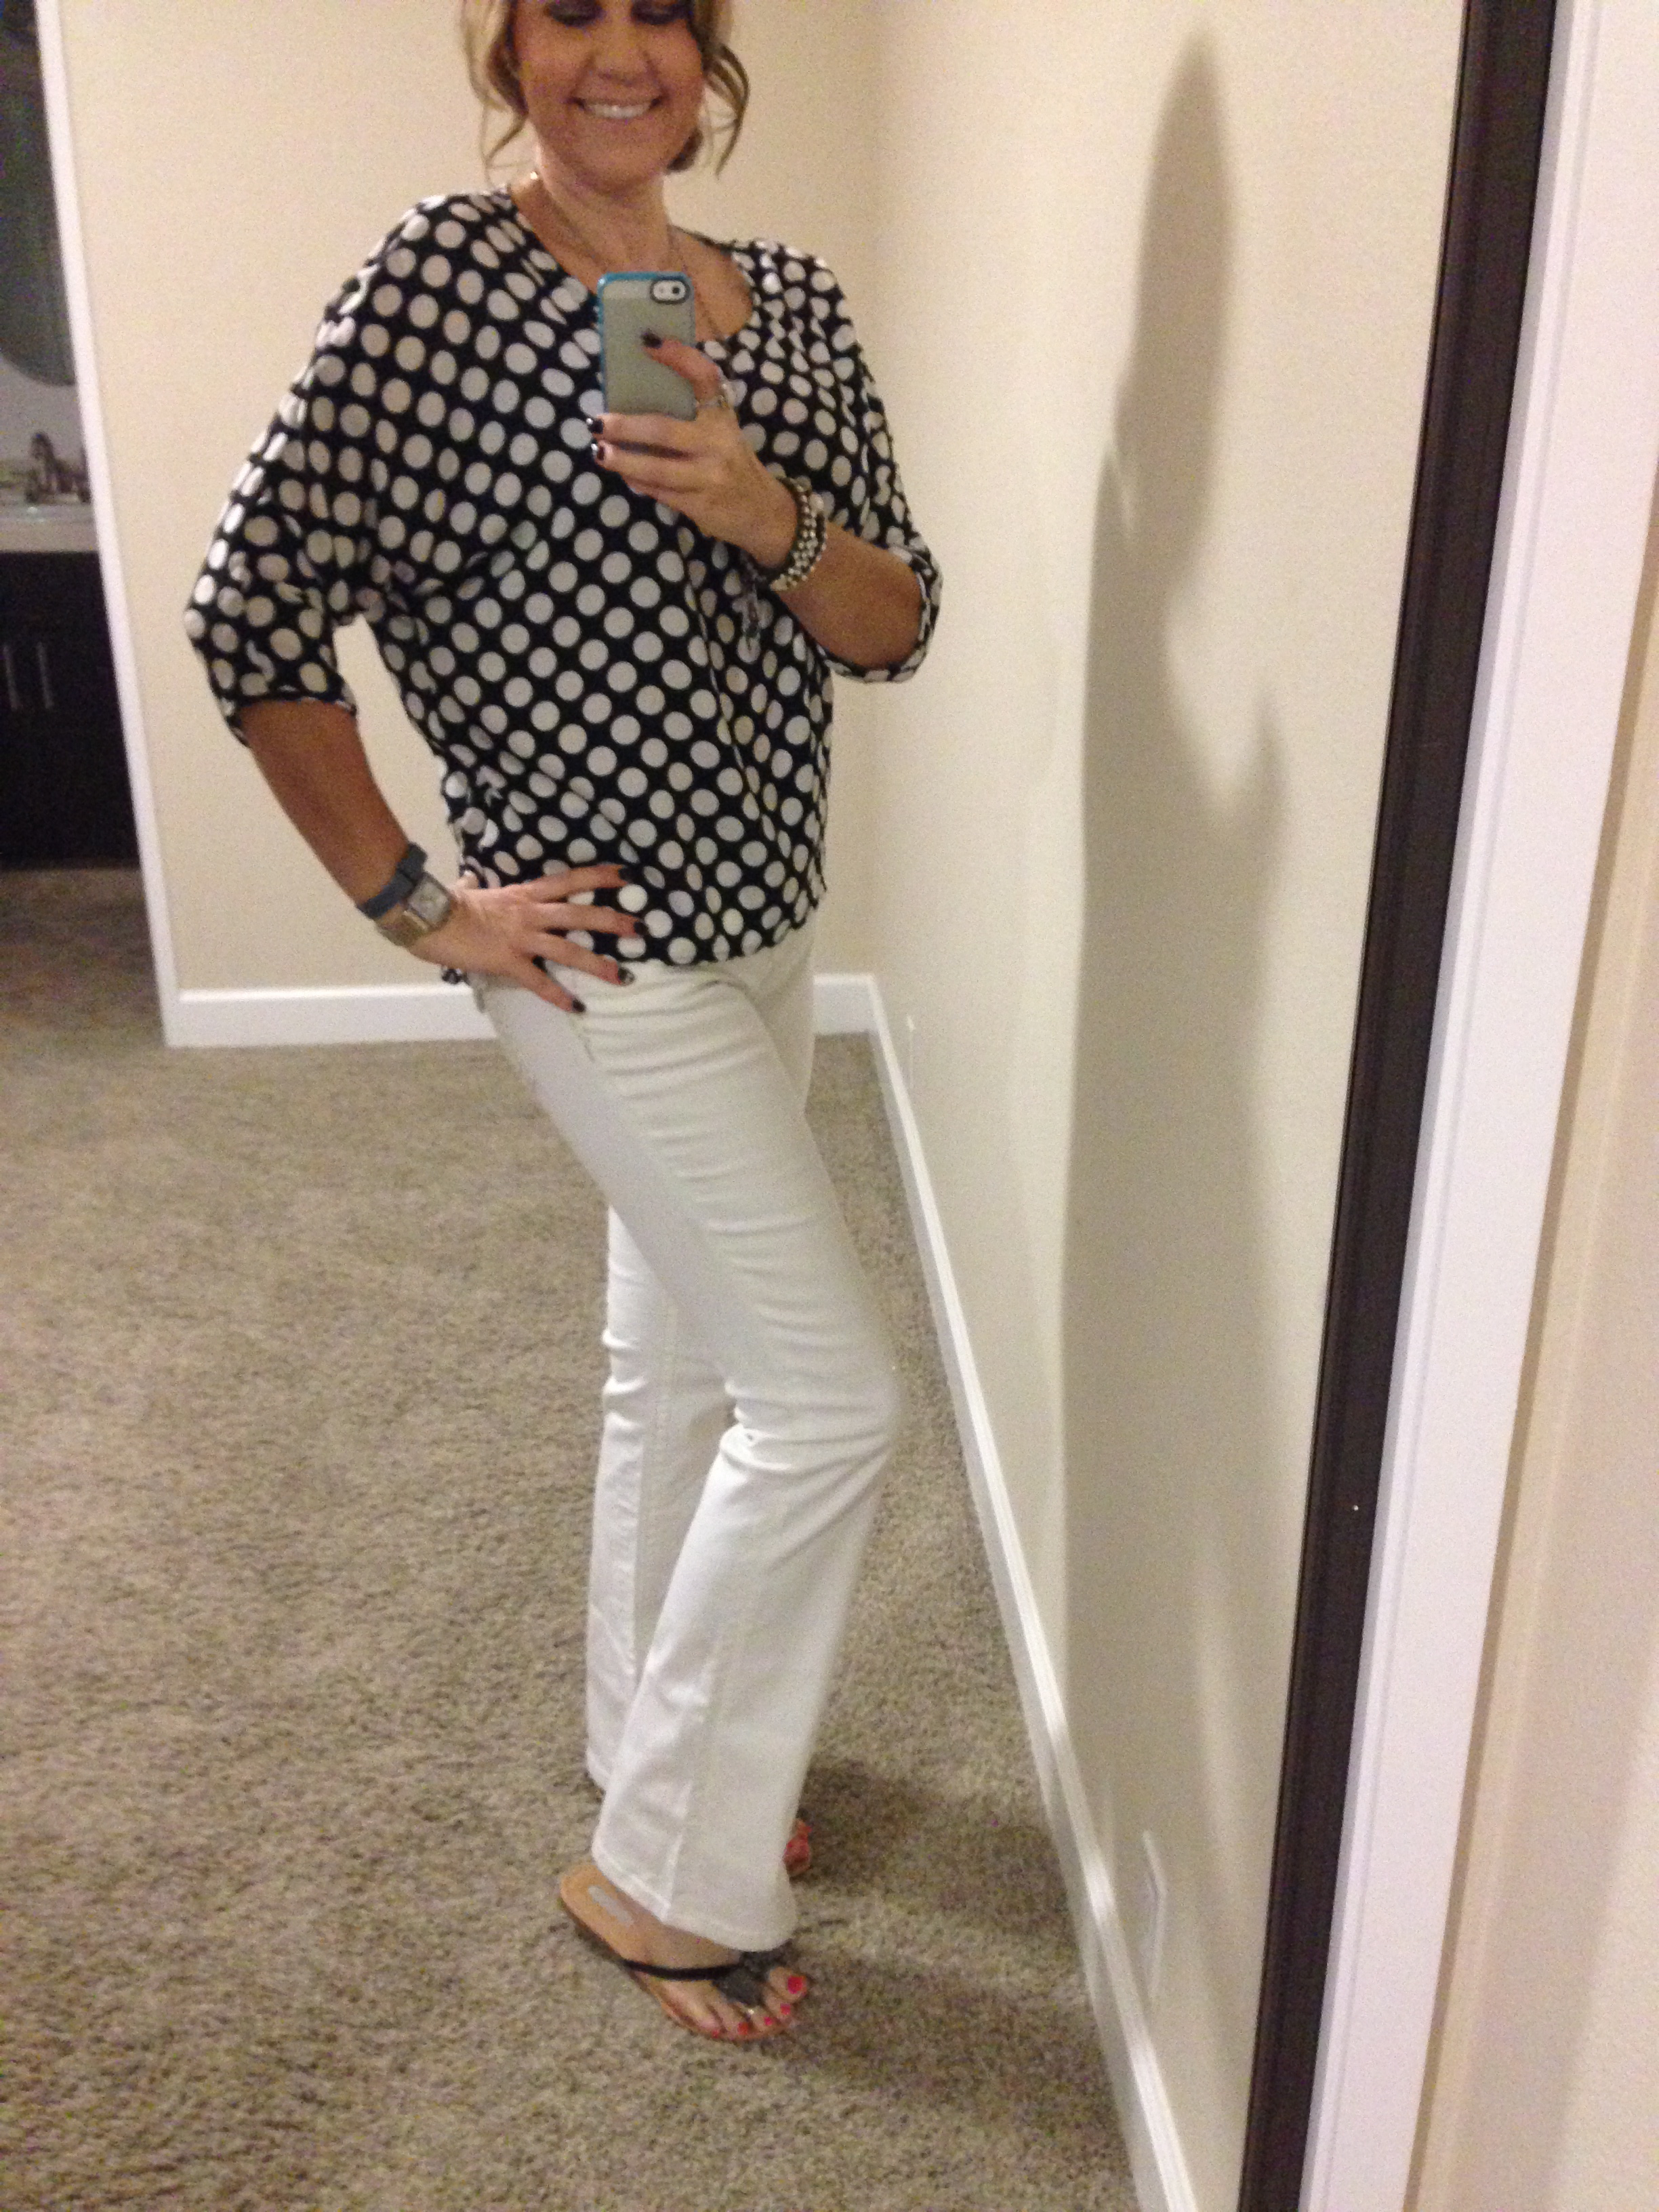 Spring means polka dots! Blouse: Bobeau (Nordstrom Rack); Jeans: Miss Me (Macy's); Sandals: INC (Miss Me); Necklace: Crystal Basica; Watch: Michele;